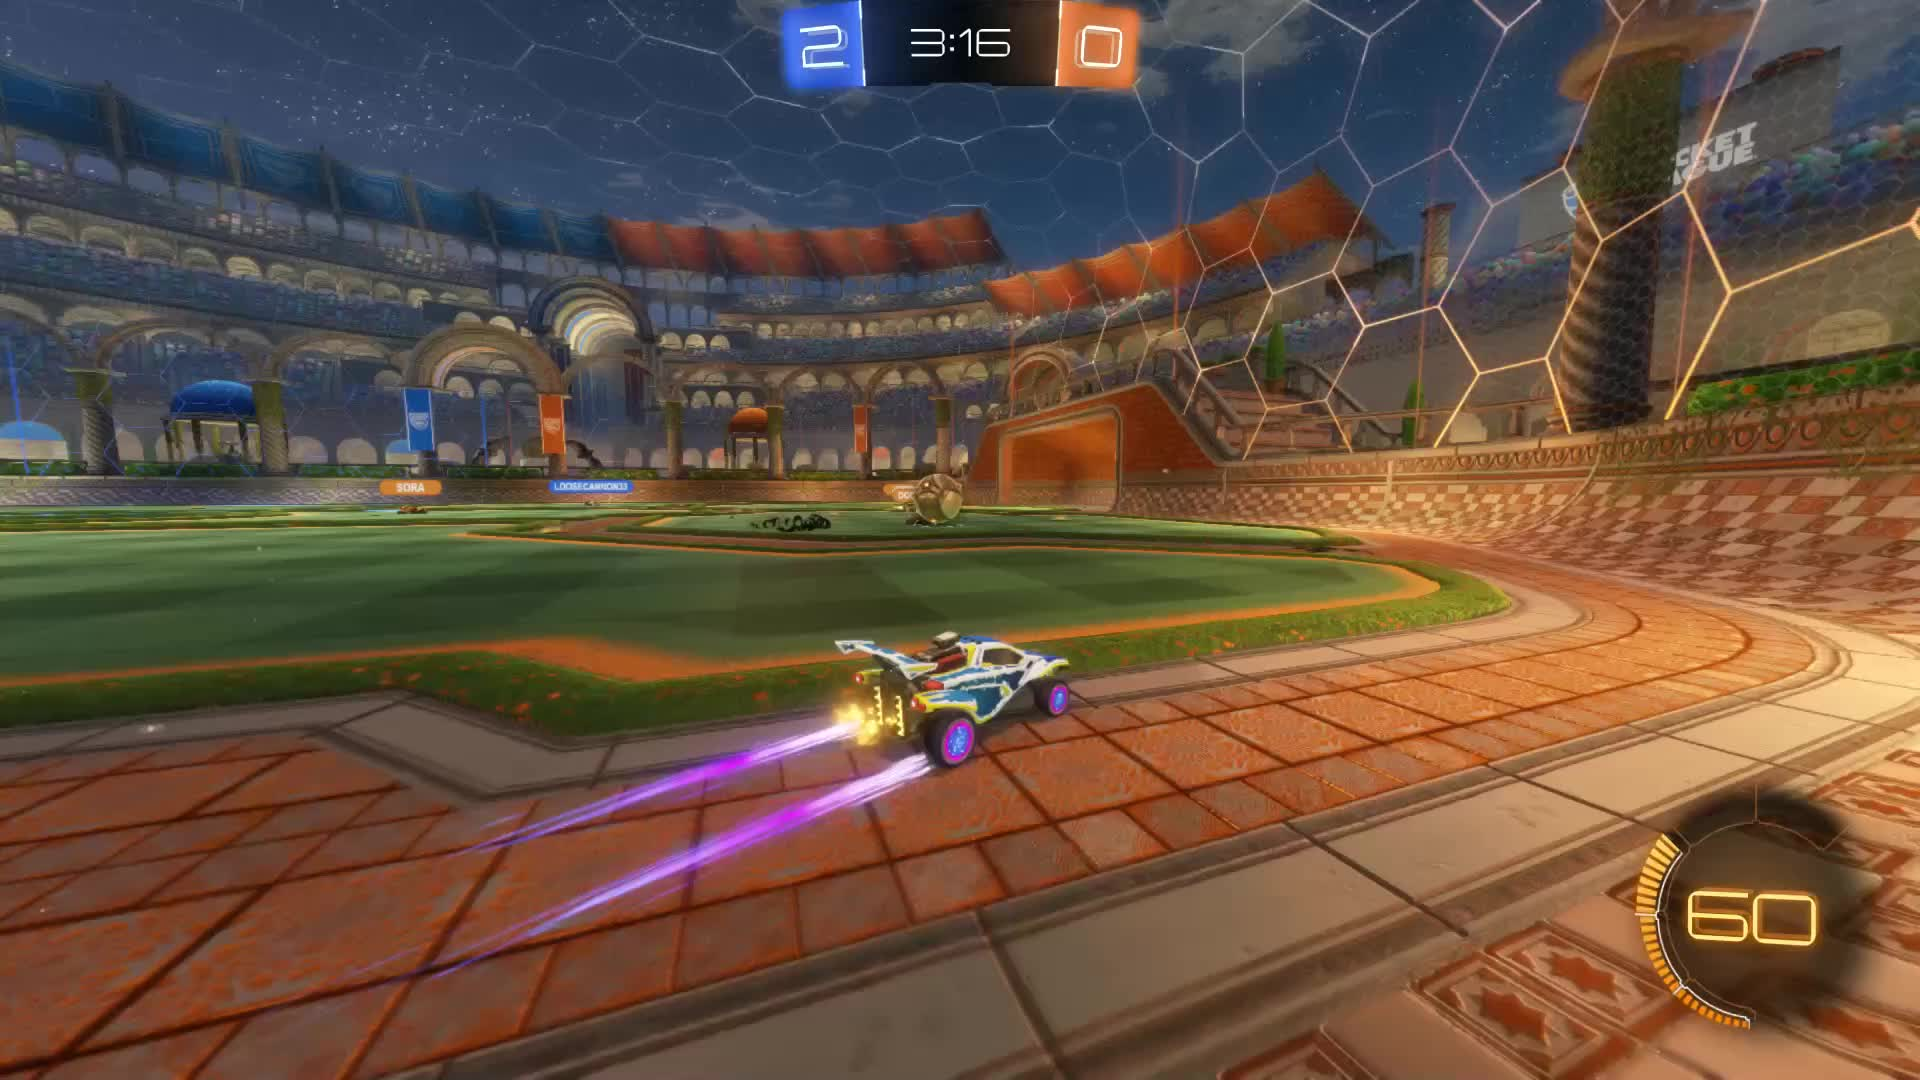 Gif Your Game, GifYourGame, Goal, Rocket League, RocketLeague, XxXxXxXxXxXxXxXxXxX, Goal 3: XxXxXxXxXxXxXxXxXxX GIFs